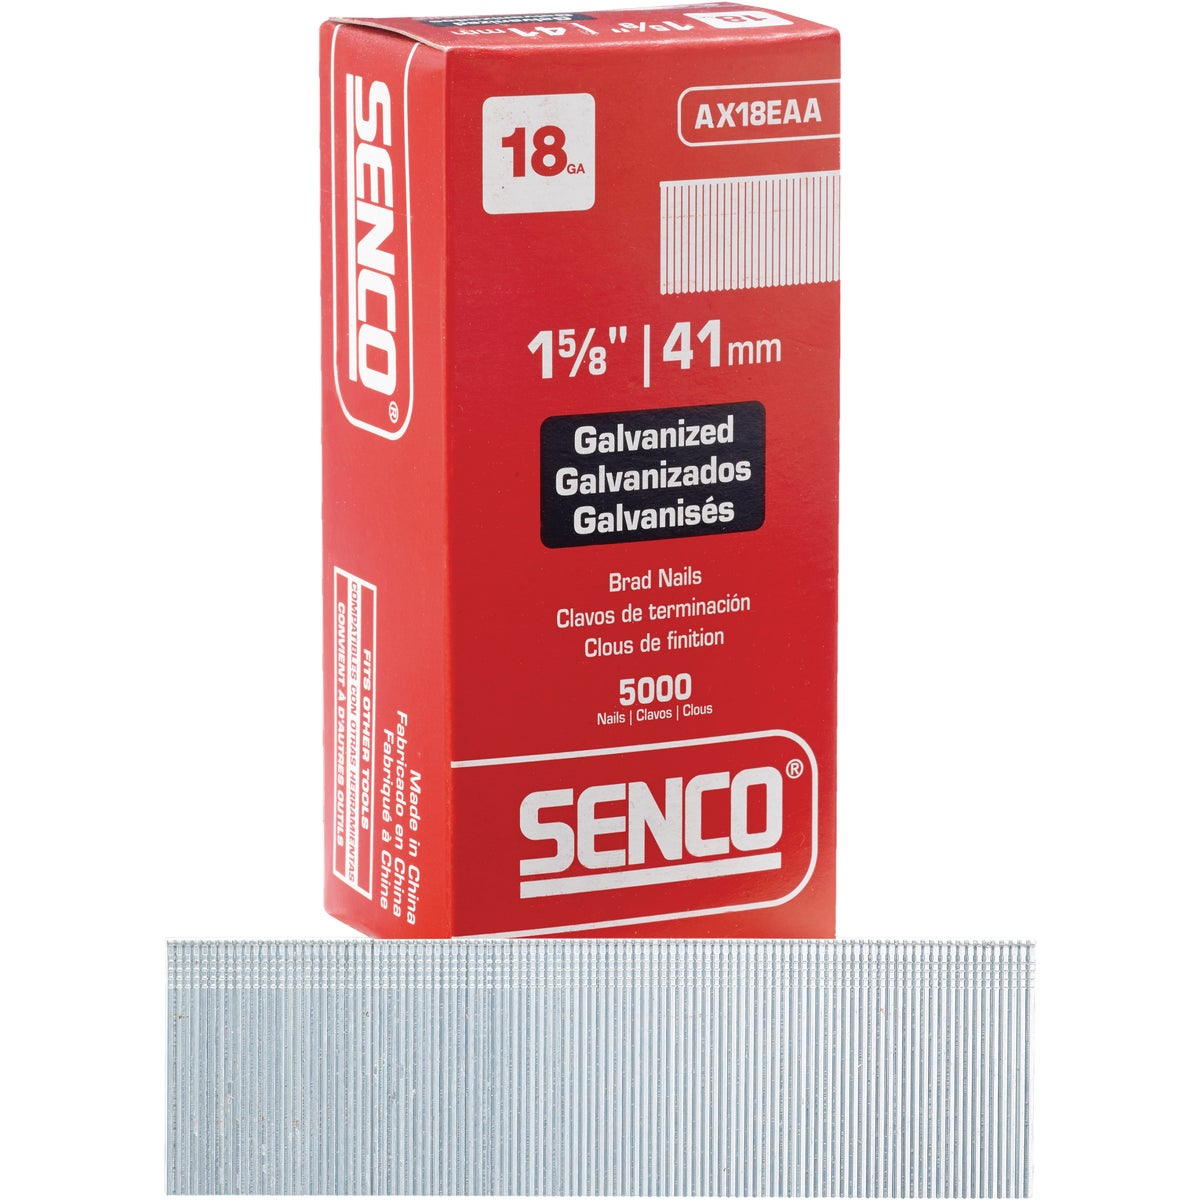 "1-5/8"" 18GA BRAD - AX18EAA by Senco Brands"